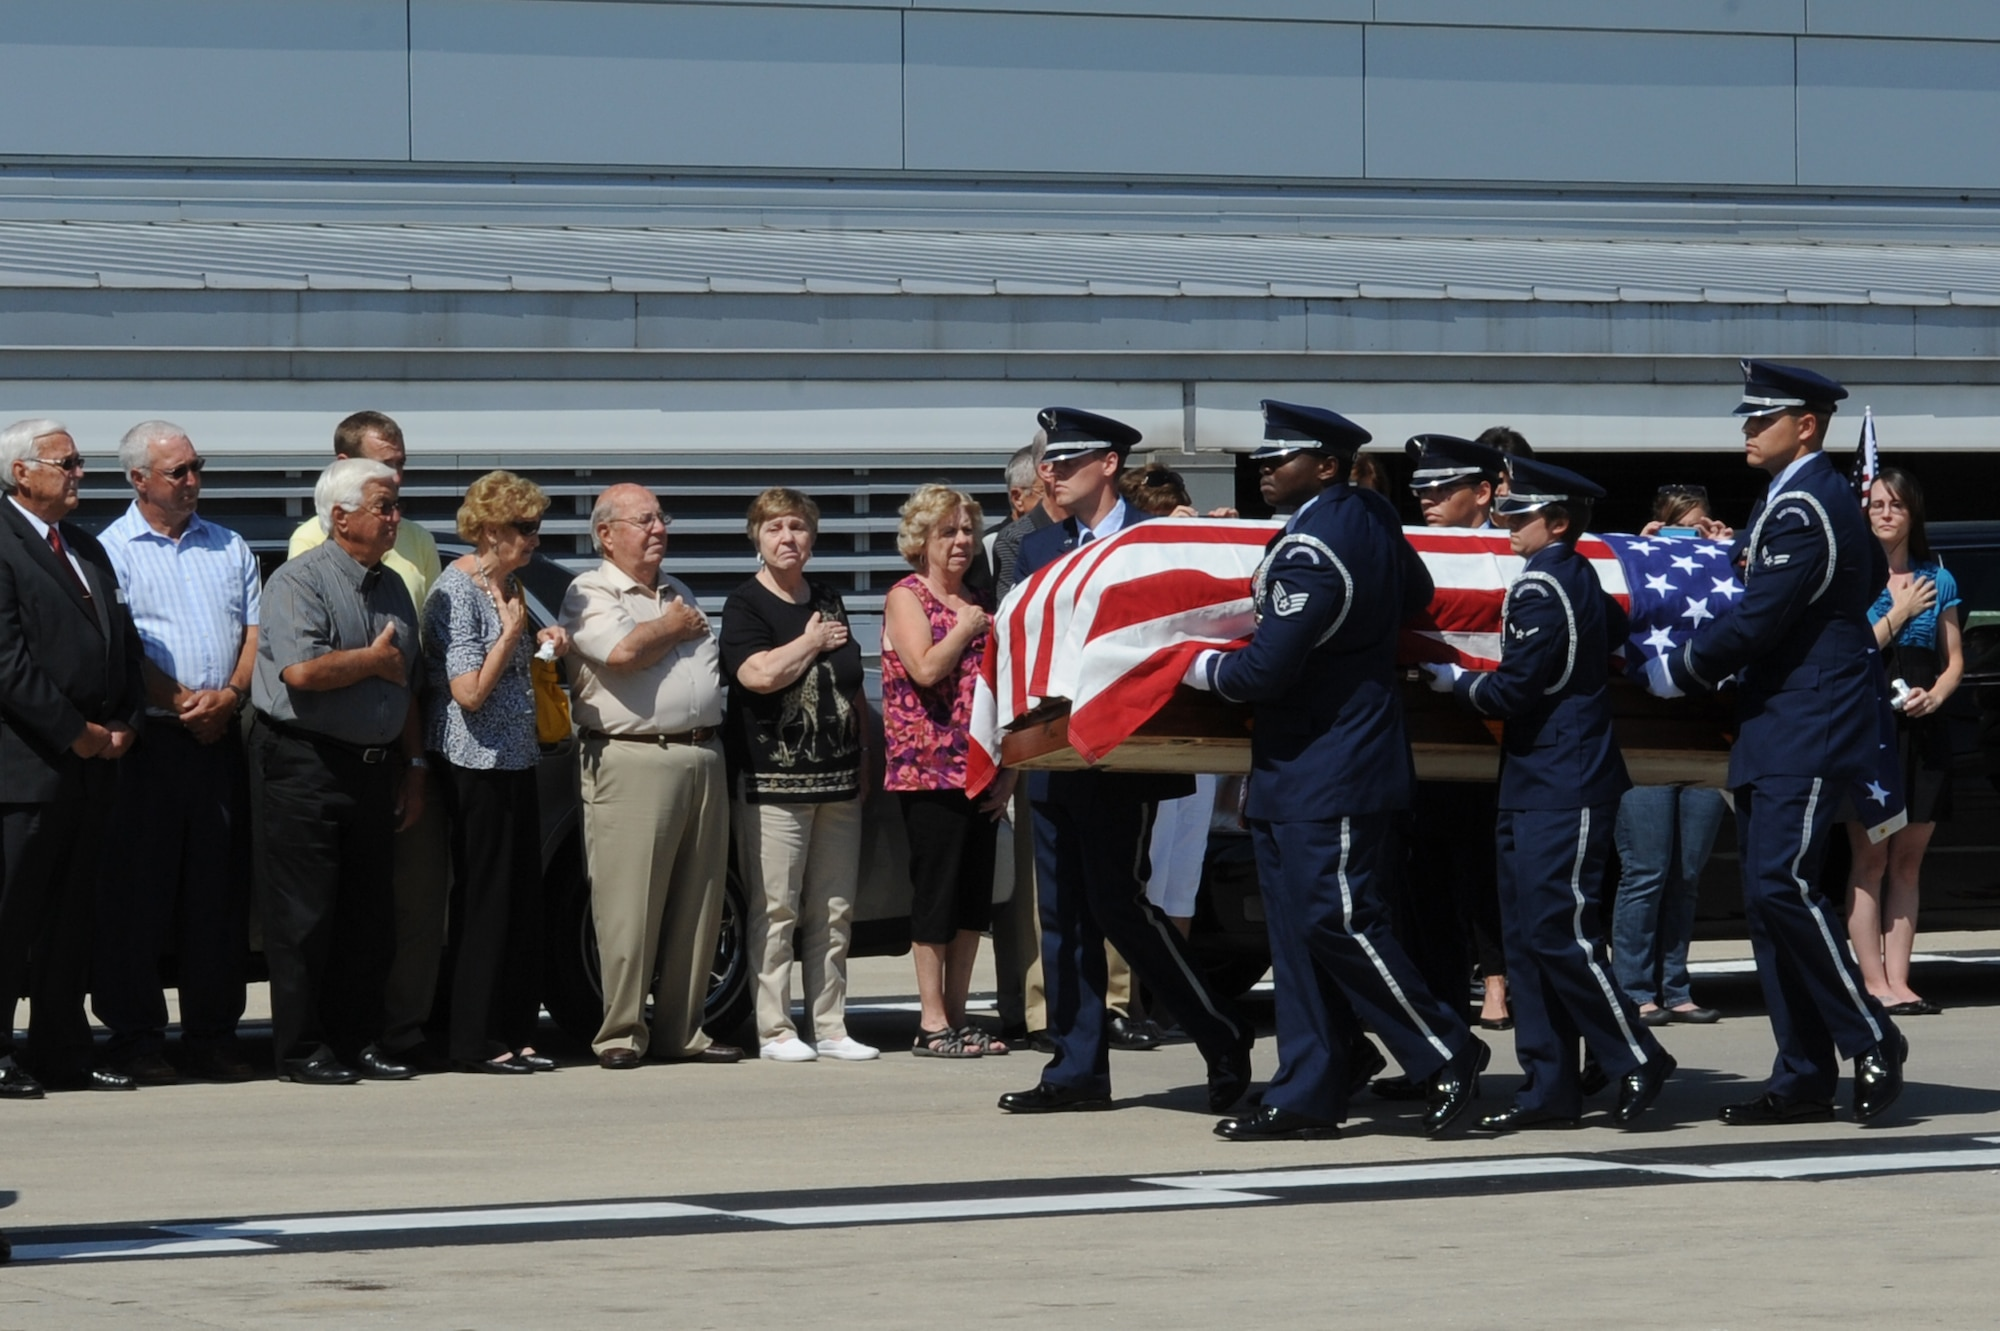 Members of the Scott Air Force Base Honor Guard transport the remains of Airman 3rd Class Howard Martin during a dignified arrival July 10, 2014, at the Indianapolis International Airport, Indiana. Martin died during a C-124 crash in 1952 and his remains were recovered earlier in 2014. (U.S. Air Force photo/Senior Airman Sarah Hall-Kirchner)